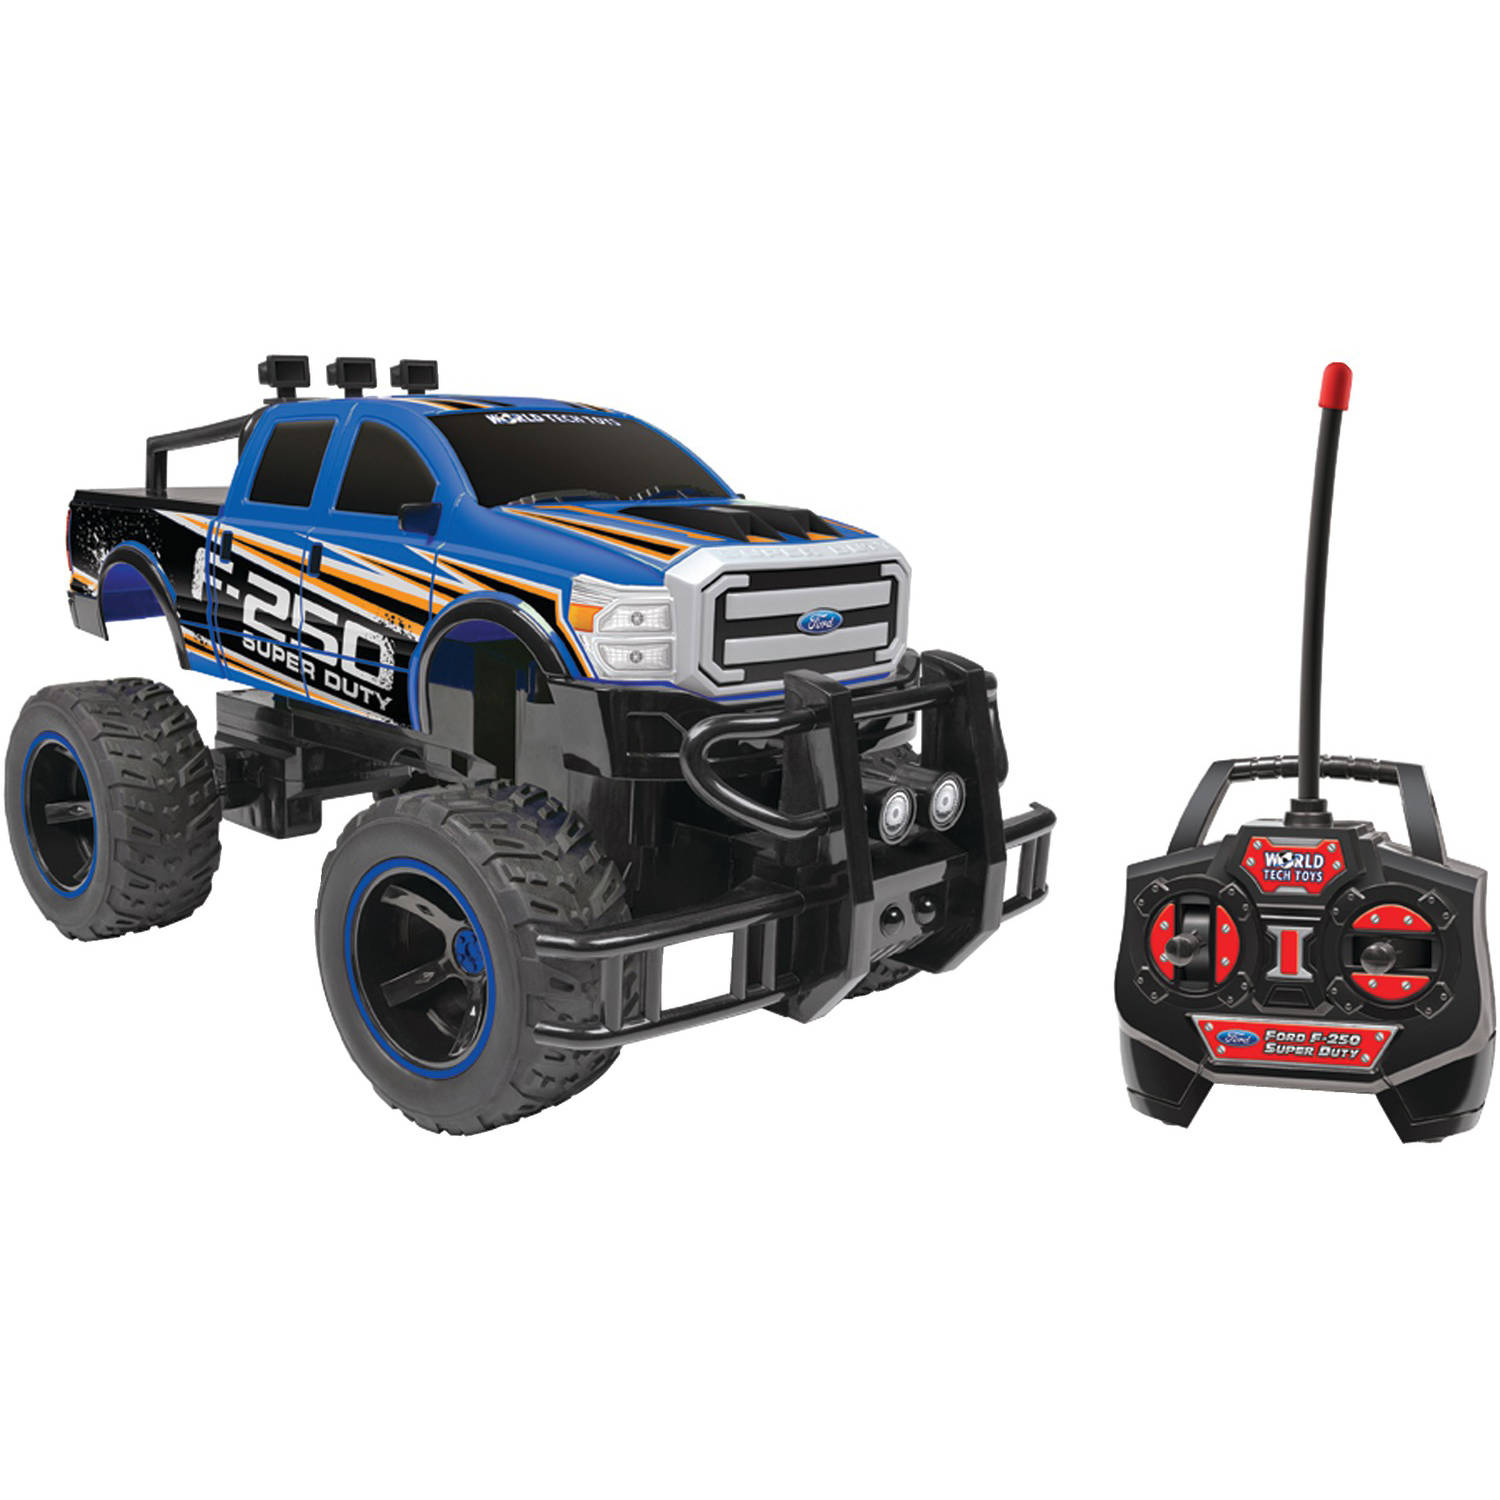 World Tech Toys 35995 114-Scale Licensed Ford RC Truck (Ford F-250 Super Duty)